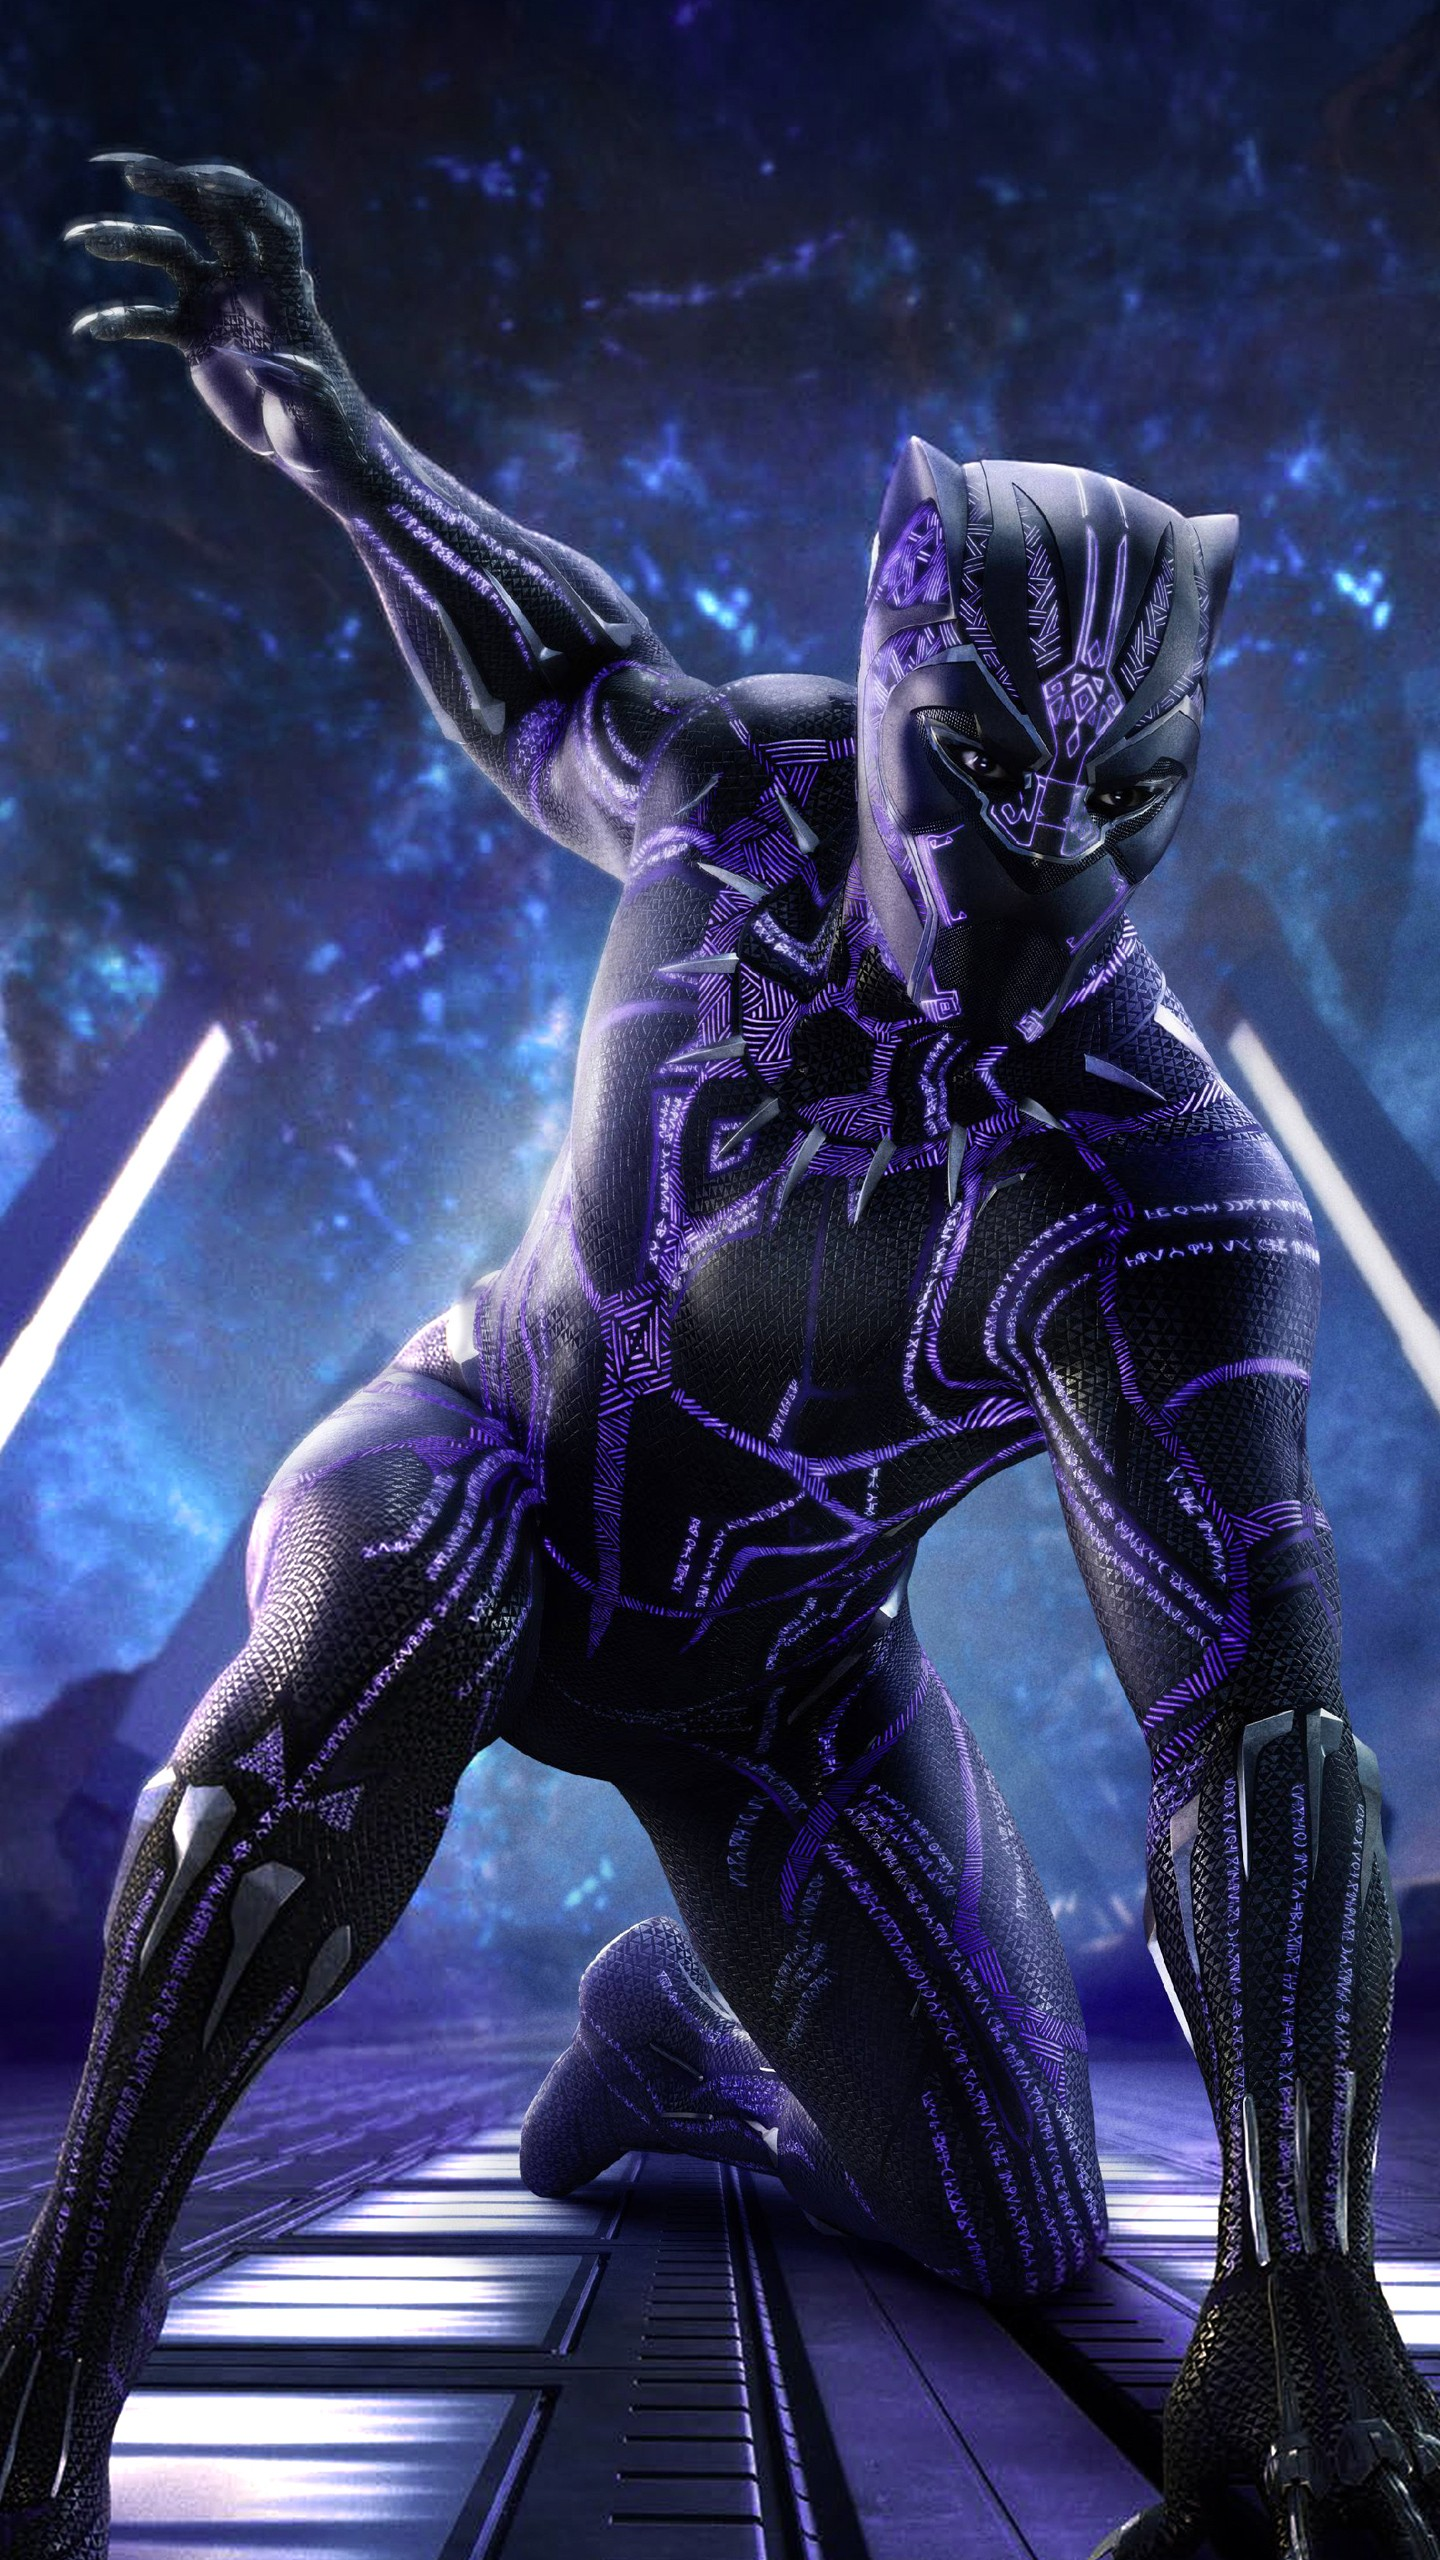 Wallpaper Superhero Marvel 3d Black Panther Empire Magazine Cover Wallpapers Hd